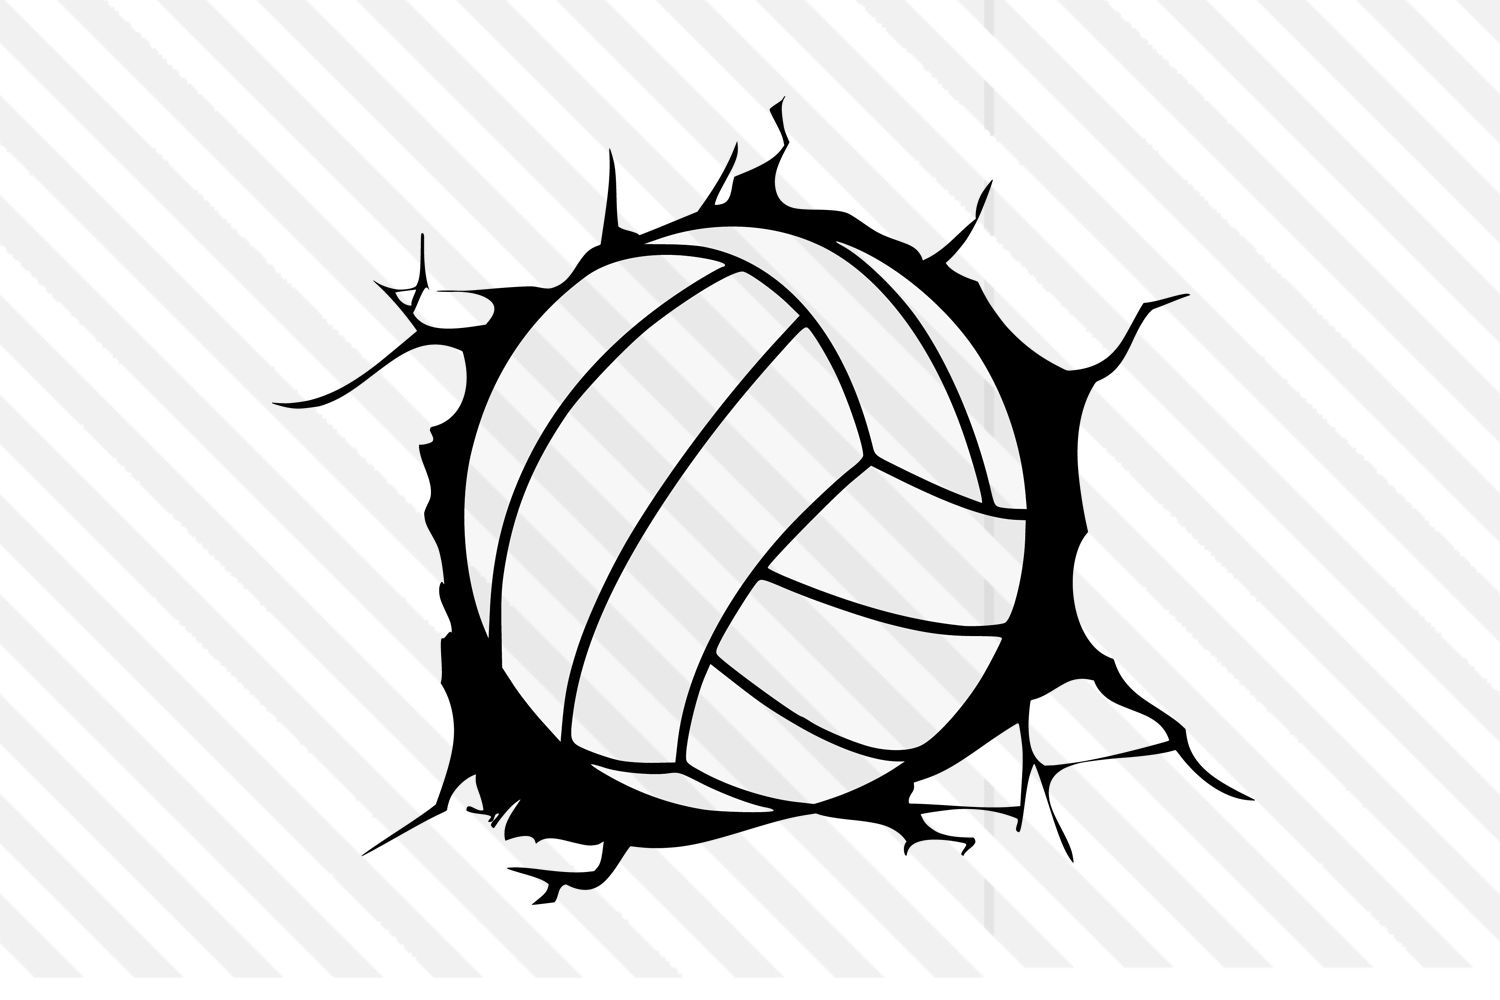 Volleyball Design Svg Dxf Vector Logo Graphic By Johanruartist Creative Fabrica In 2020 Volleyball Designs Vector Logo Logo Graphic